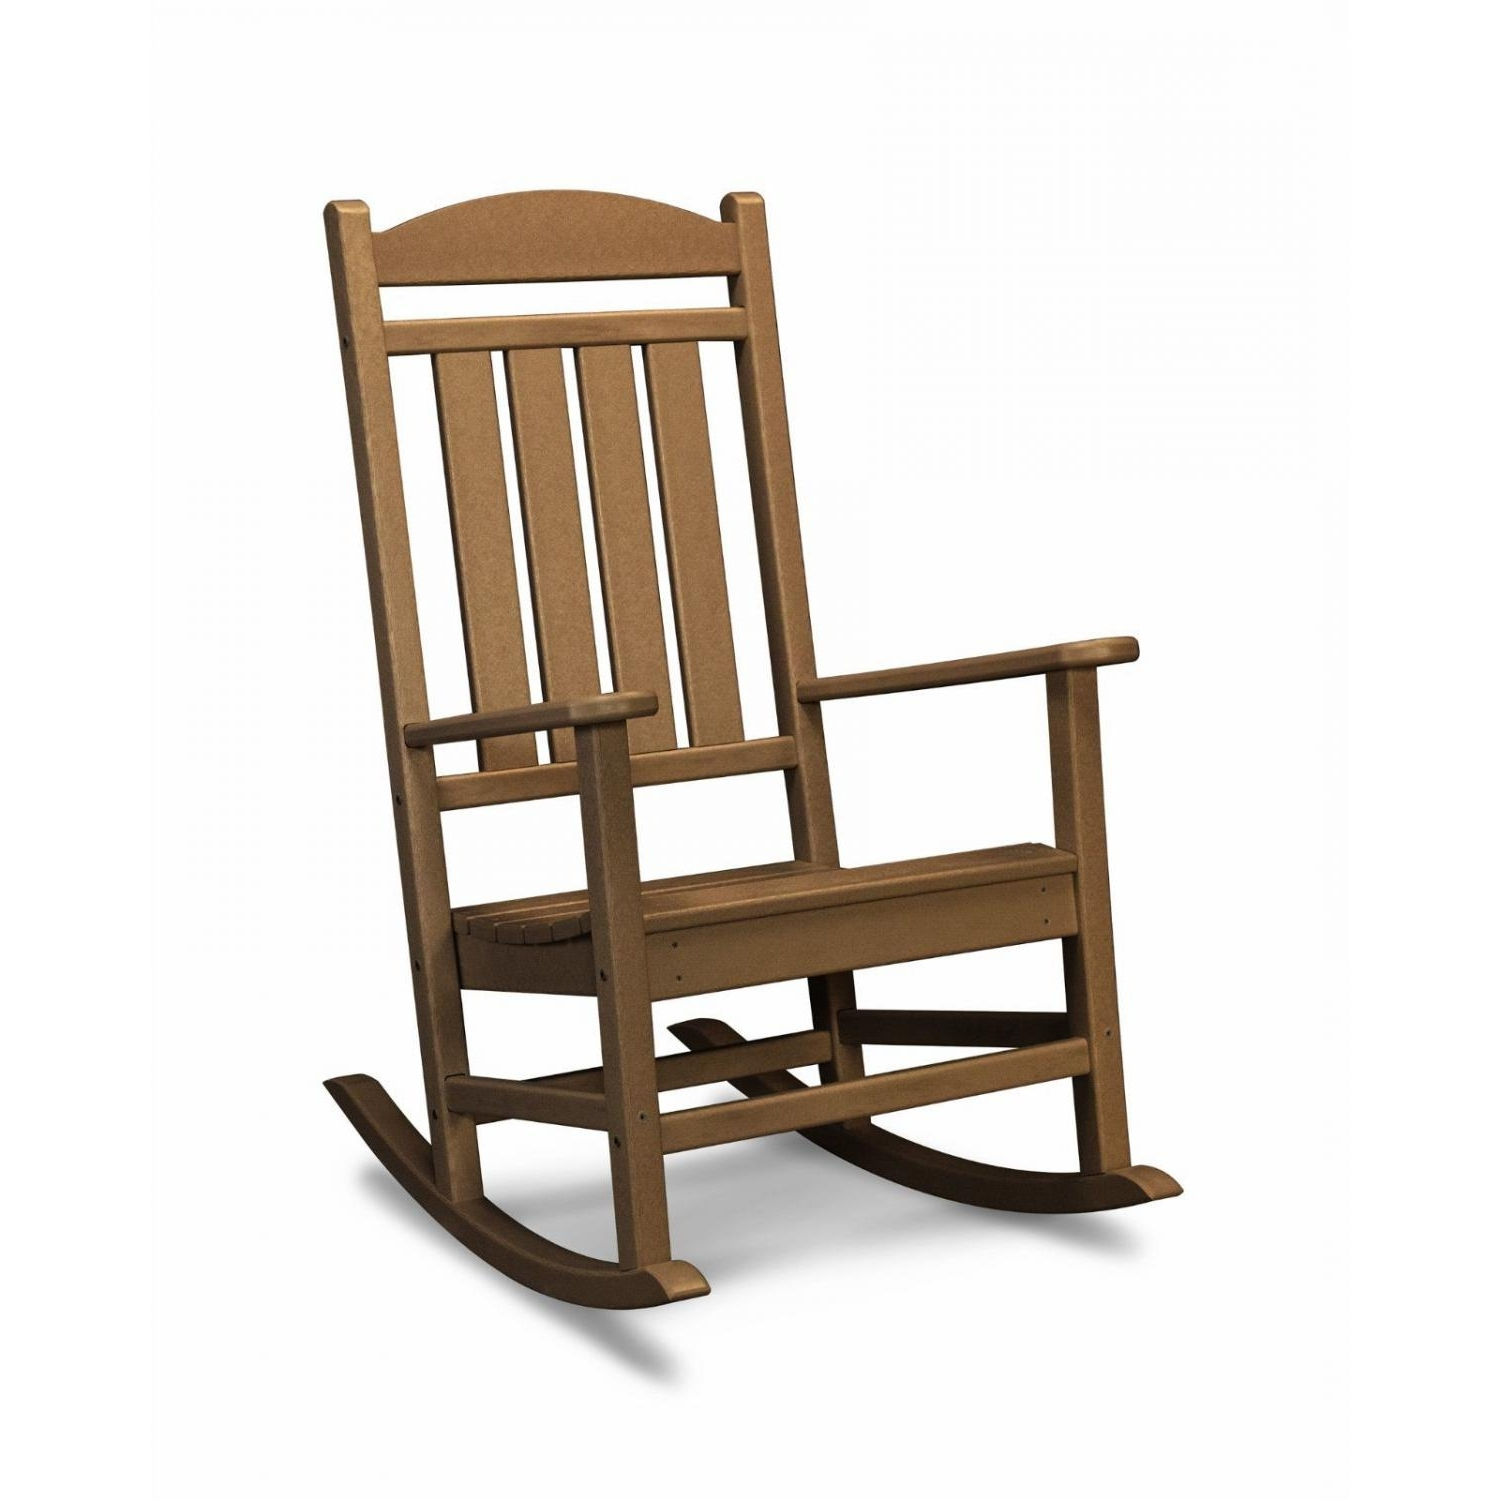 Preferred Polywood Presidential Recycled Plastic Wood Patio Rocking Chair Intended For Teak Patio Rocking Chairs (View 16 of 20)